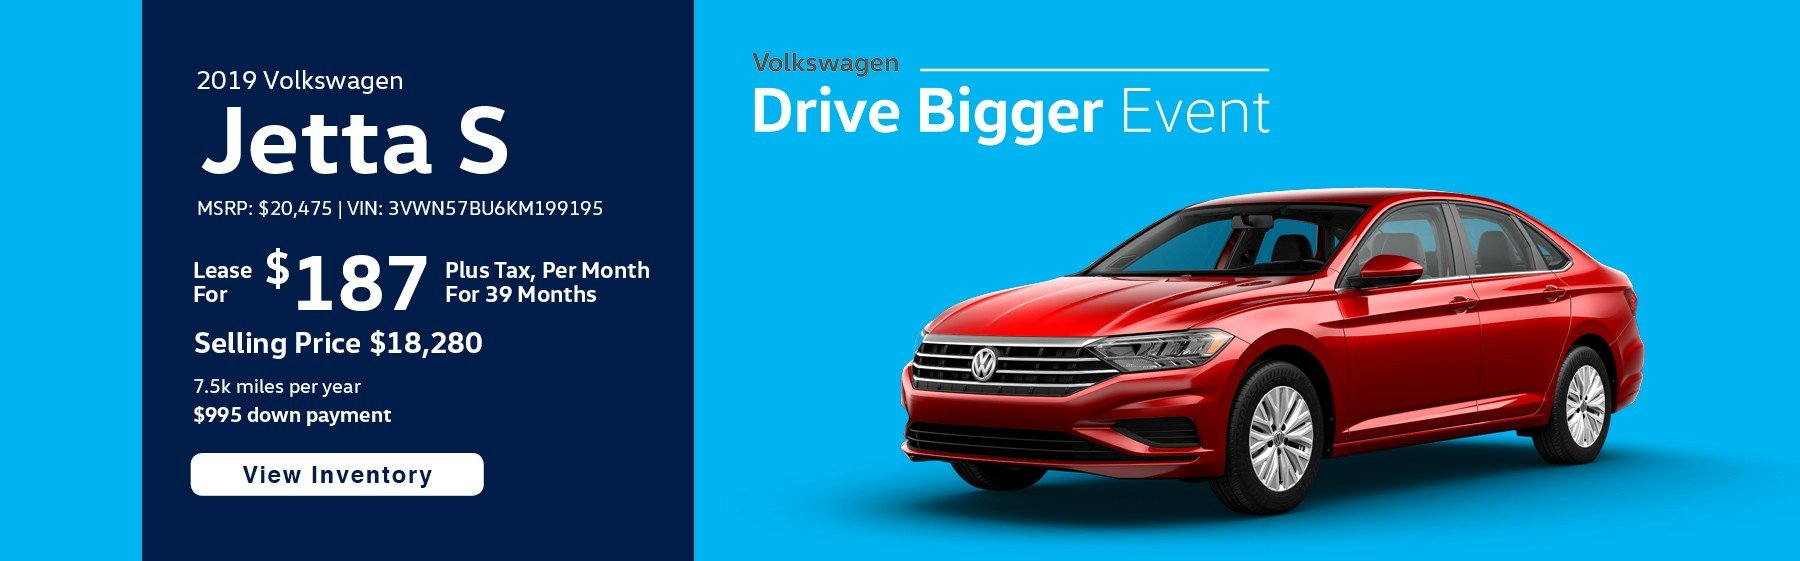 Lease the 2019 Jetta S for $187 per month, plus tax for 39 months.